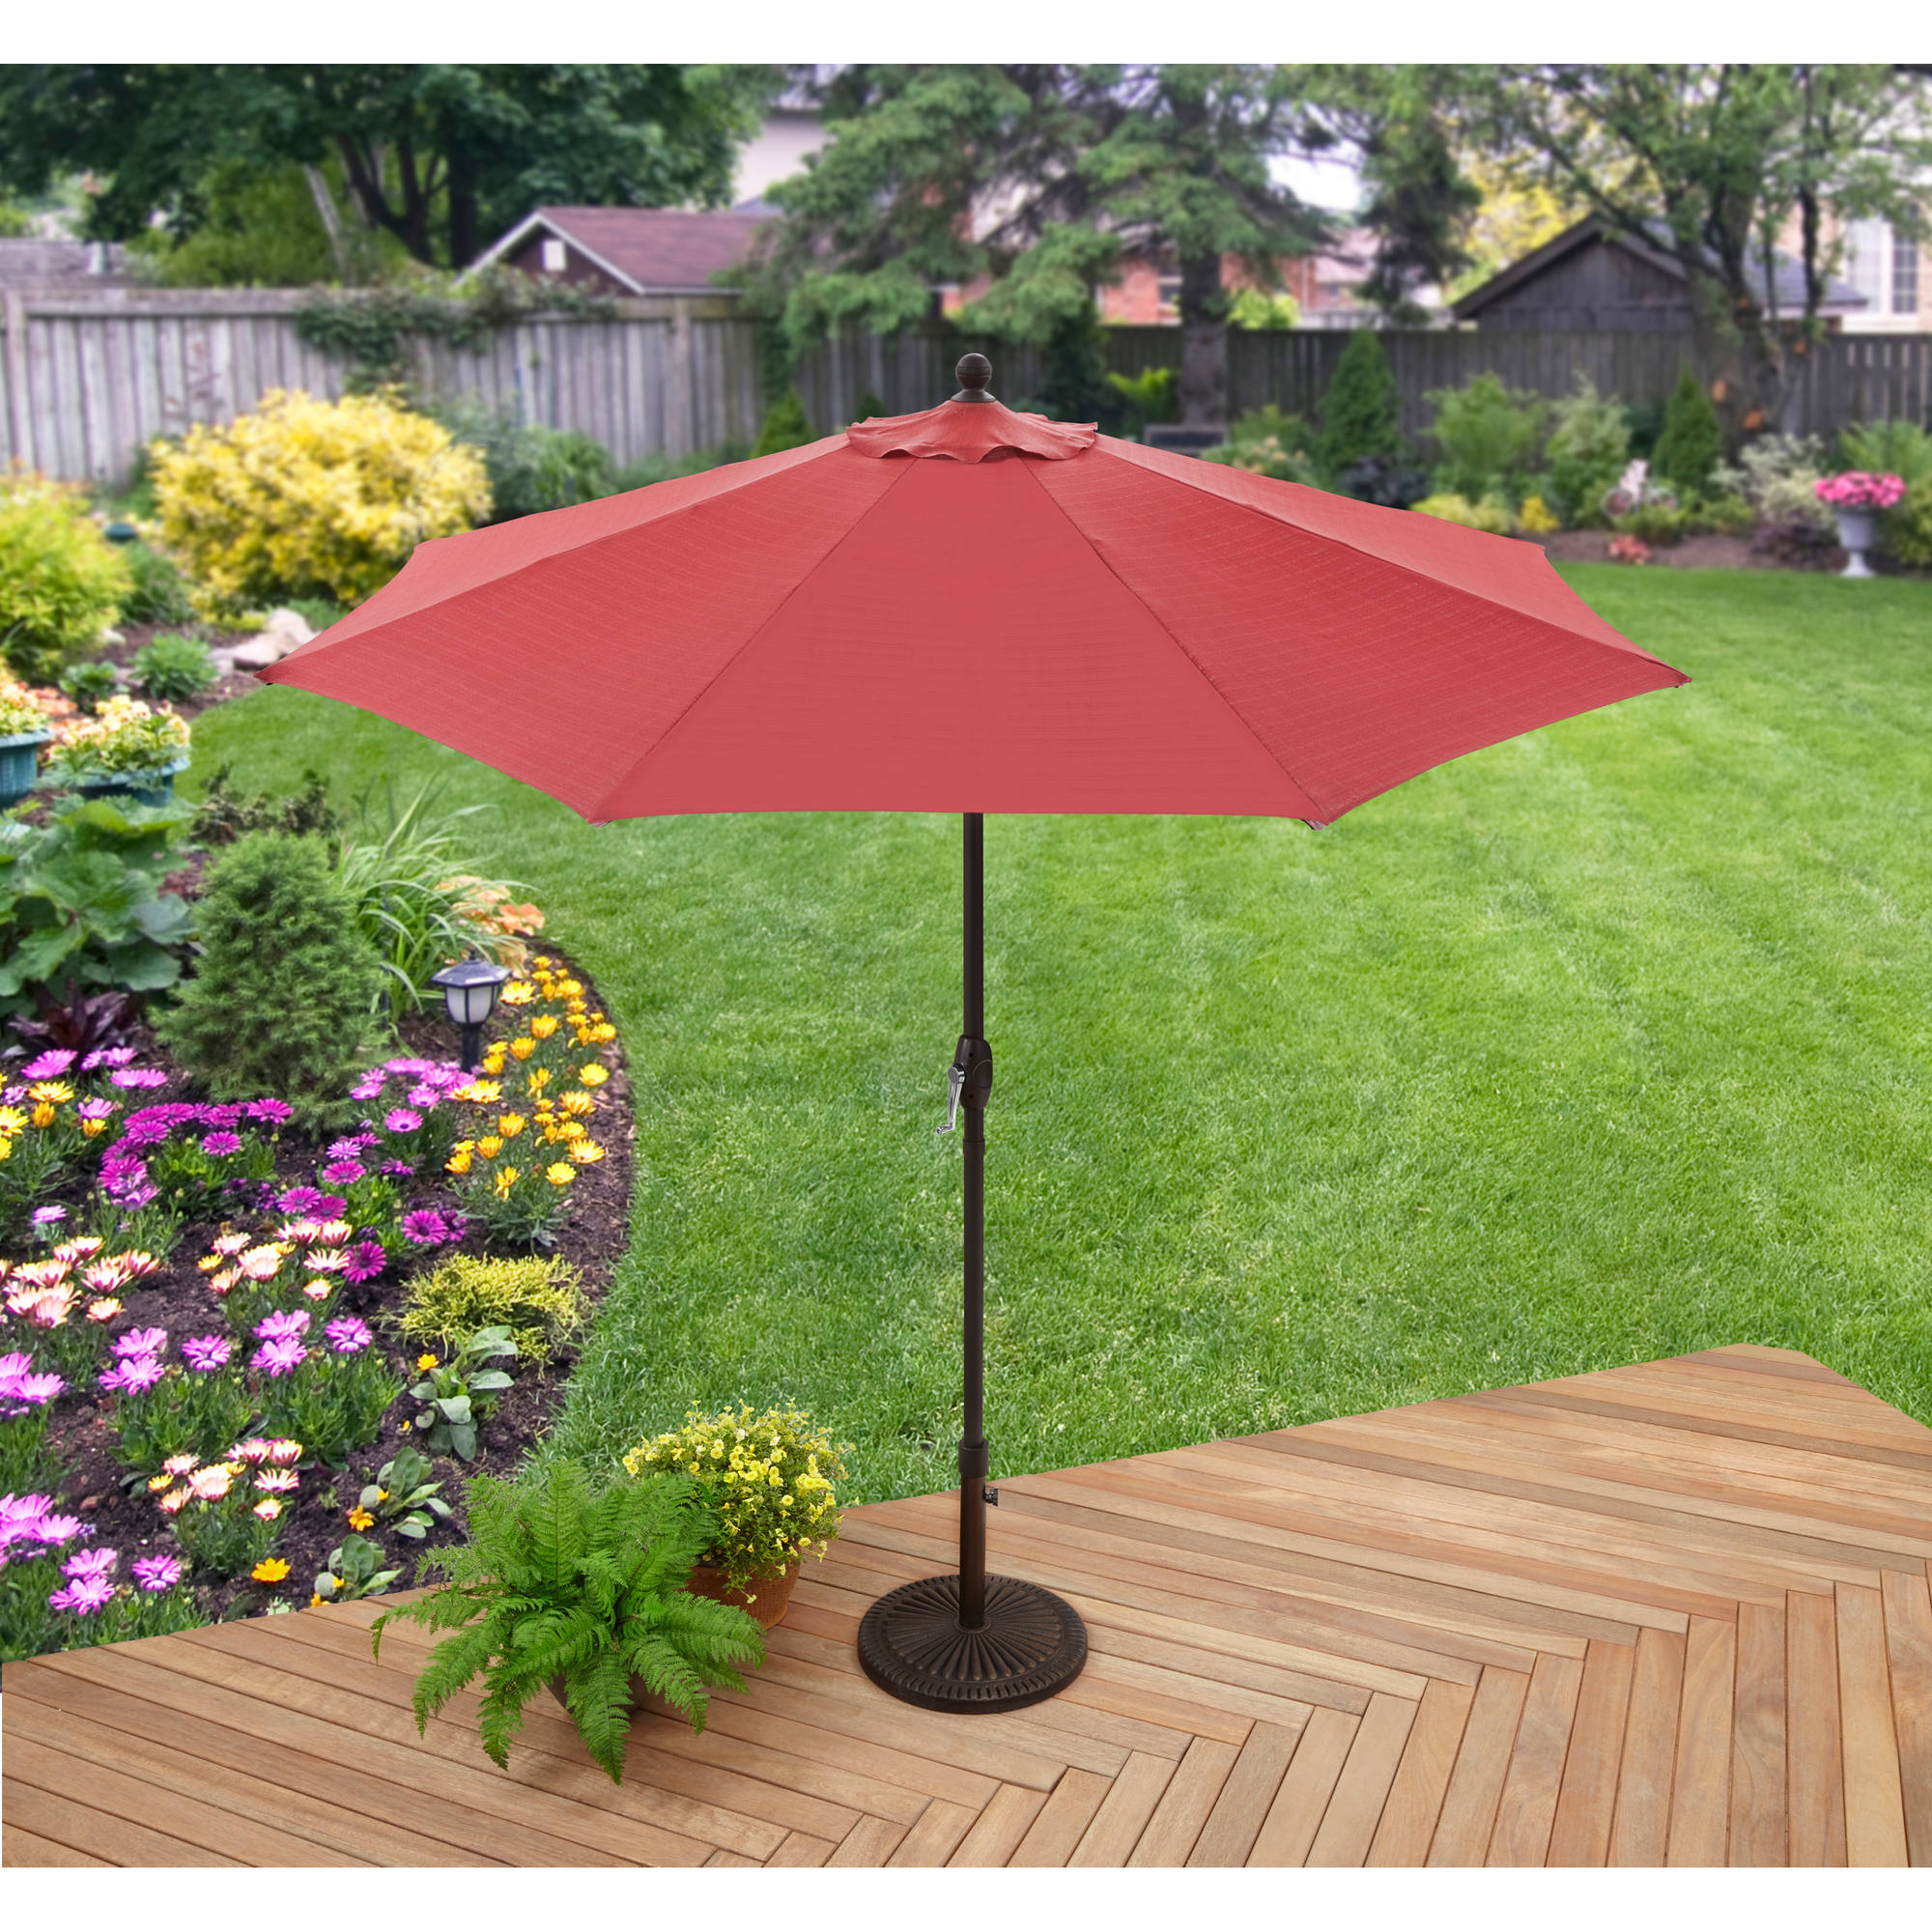 Better Homes and Gardens 9' Market Umbrella, Red